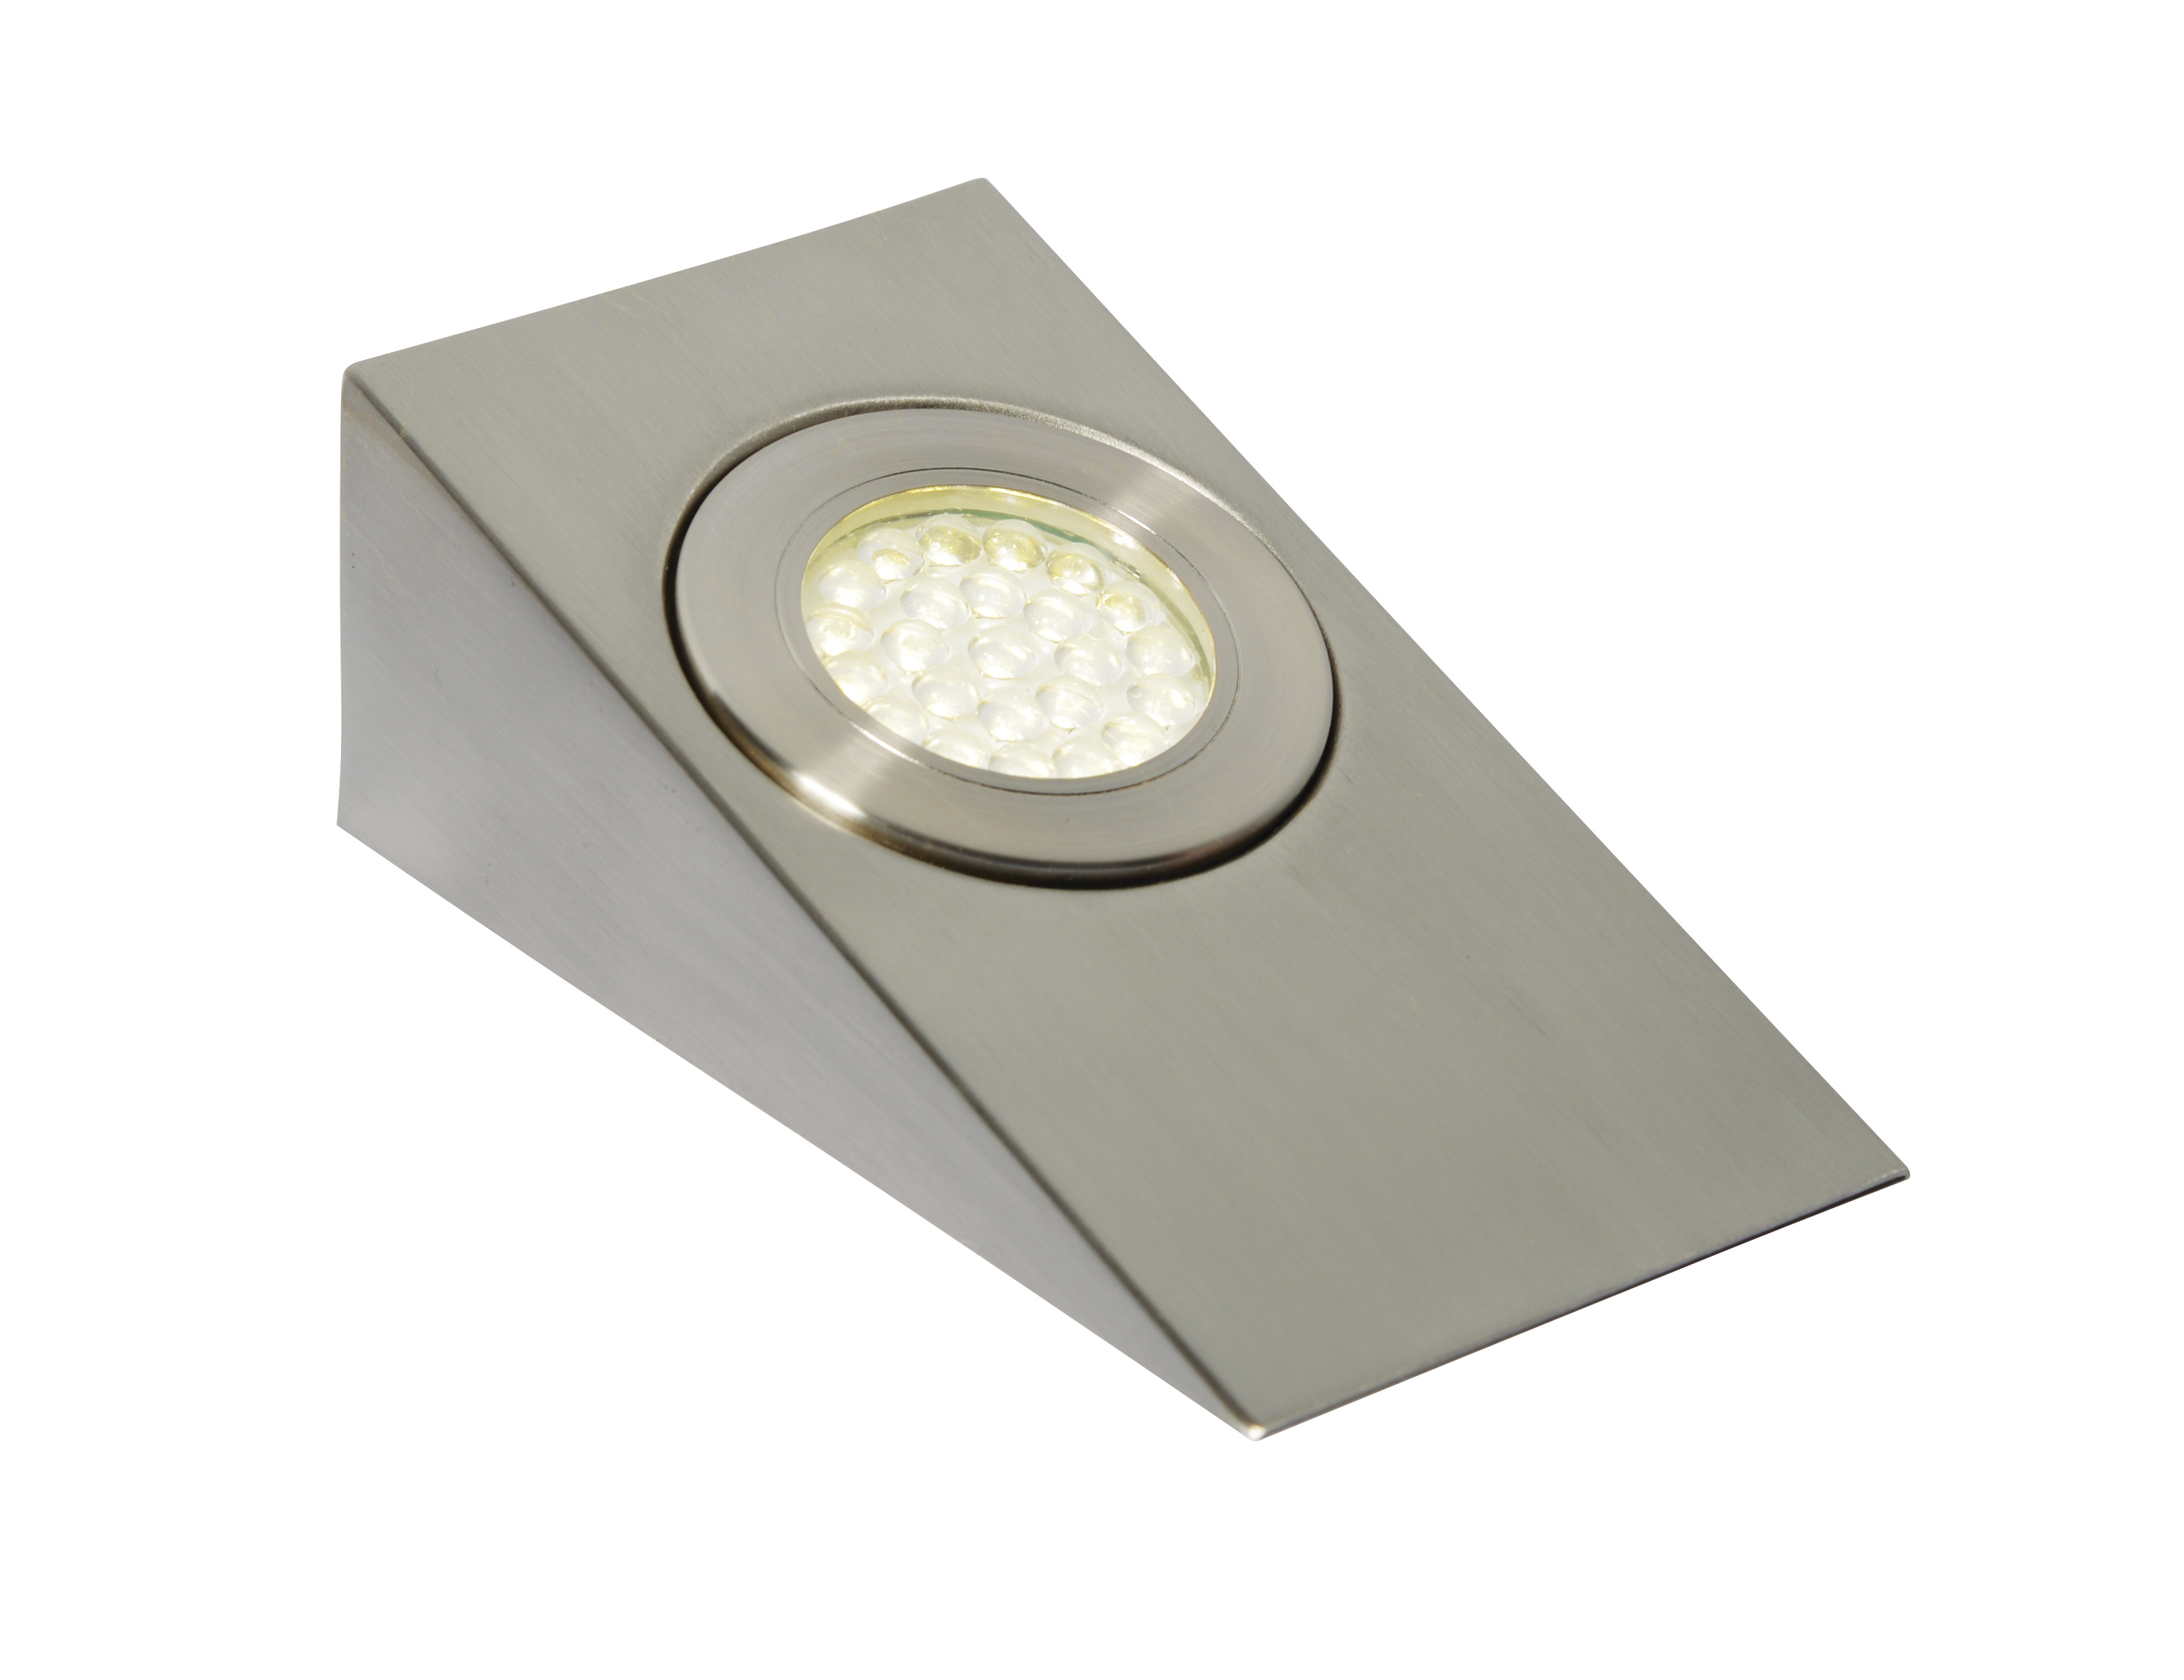 CUL-25320 Lago LED Under Cabinet Light - Warm White